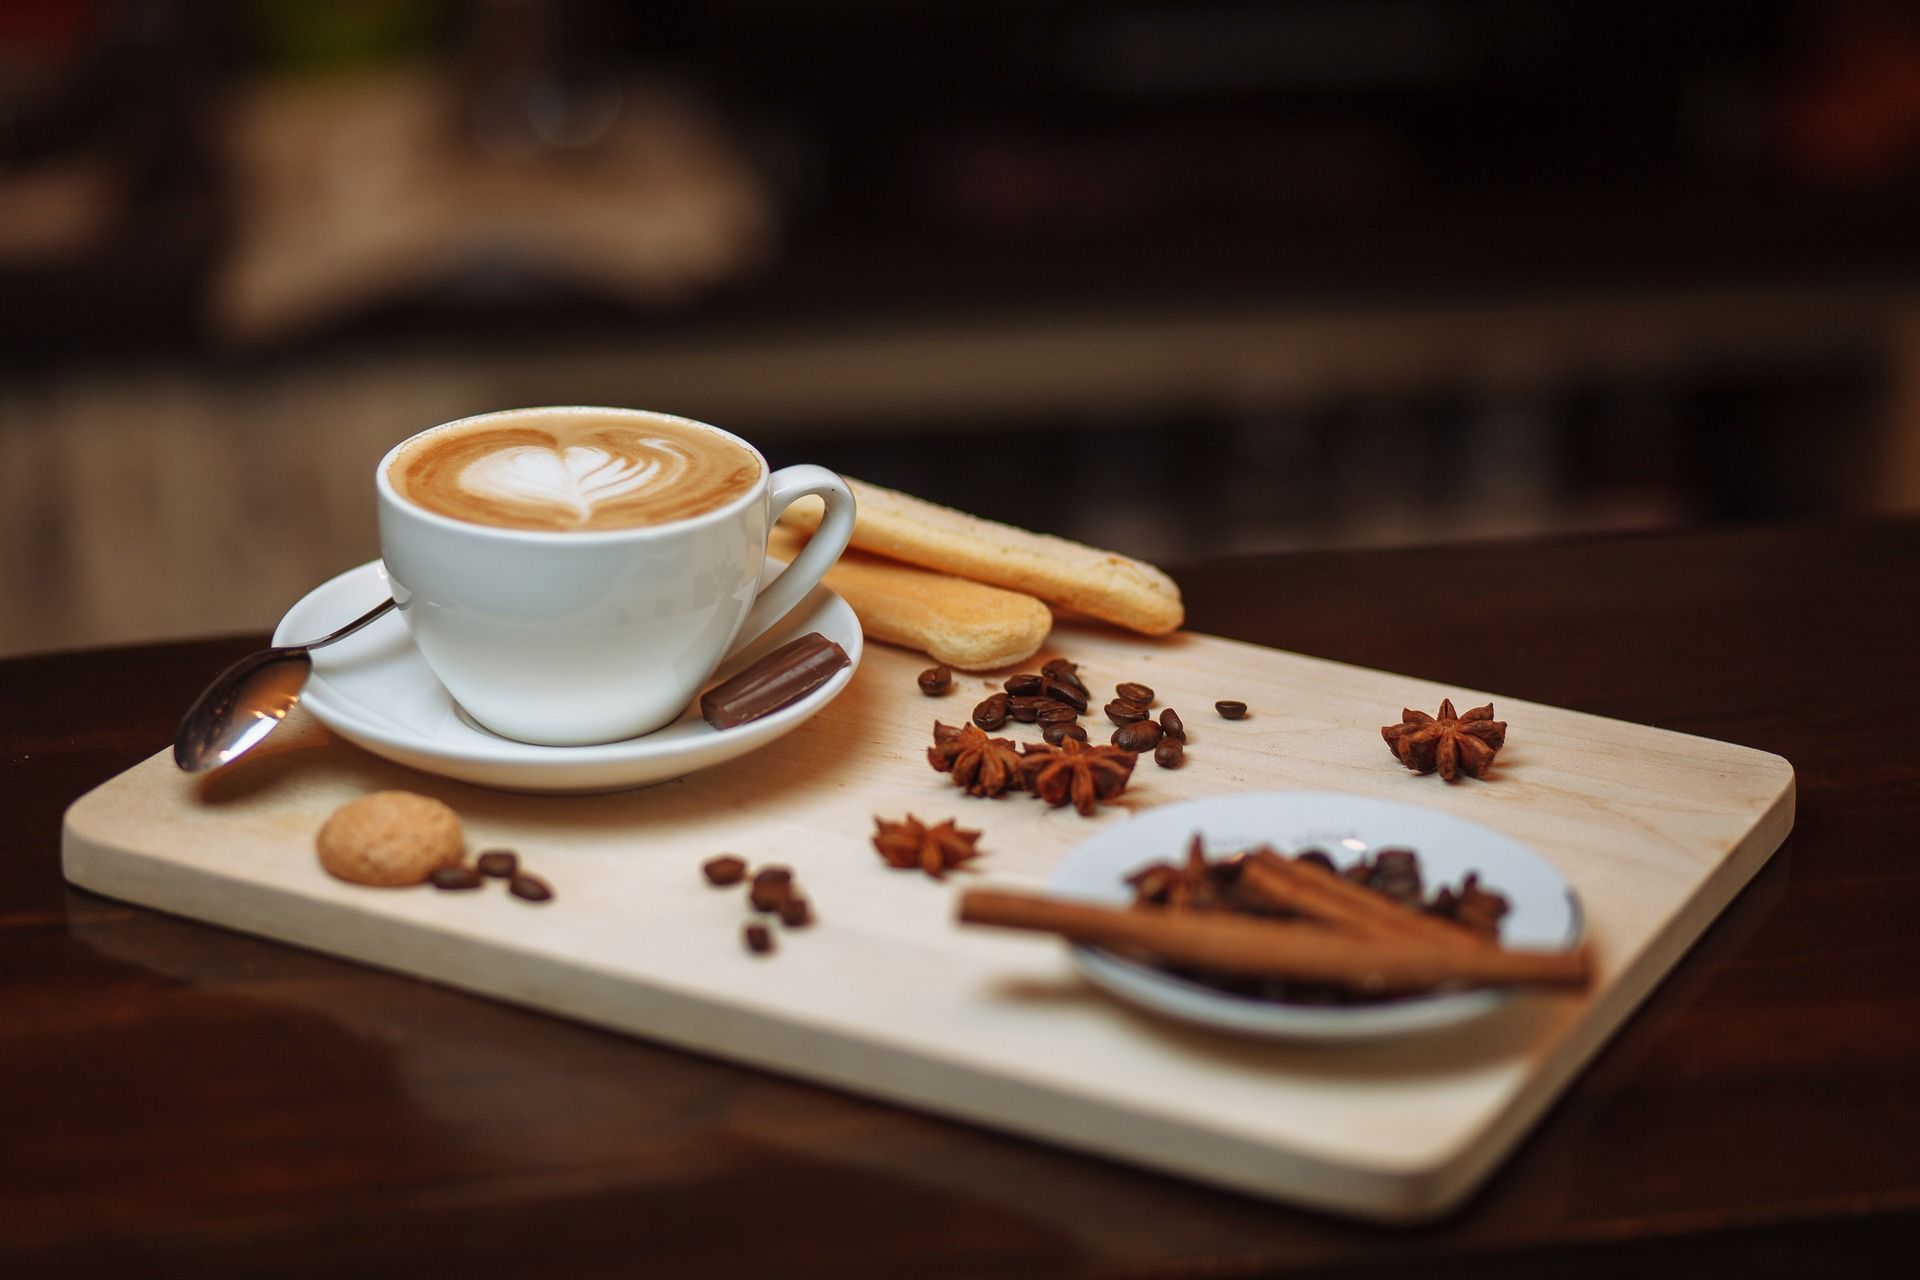 Pic of coffee and plate of food.